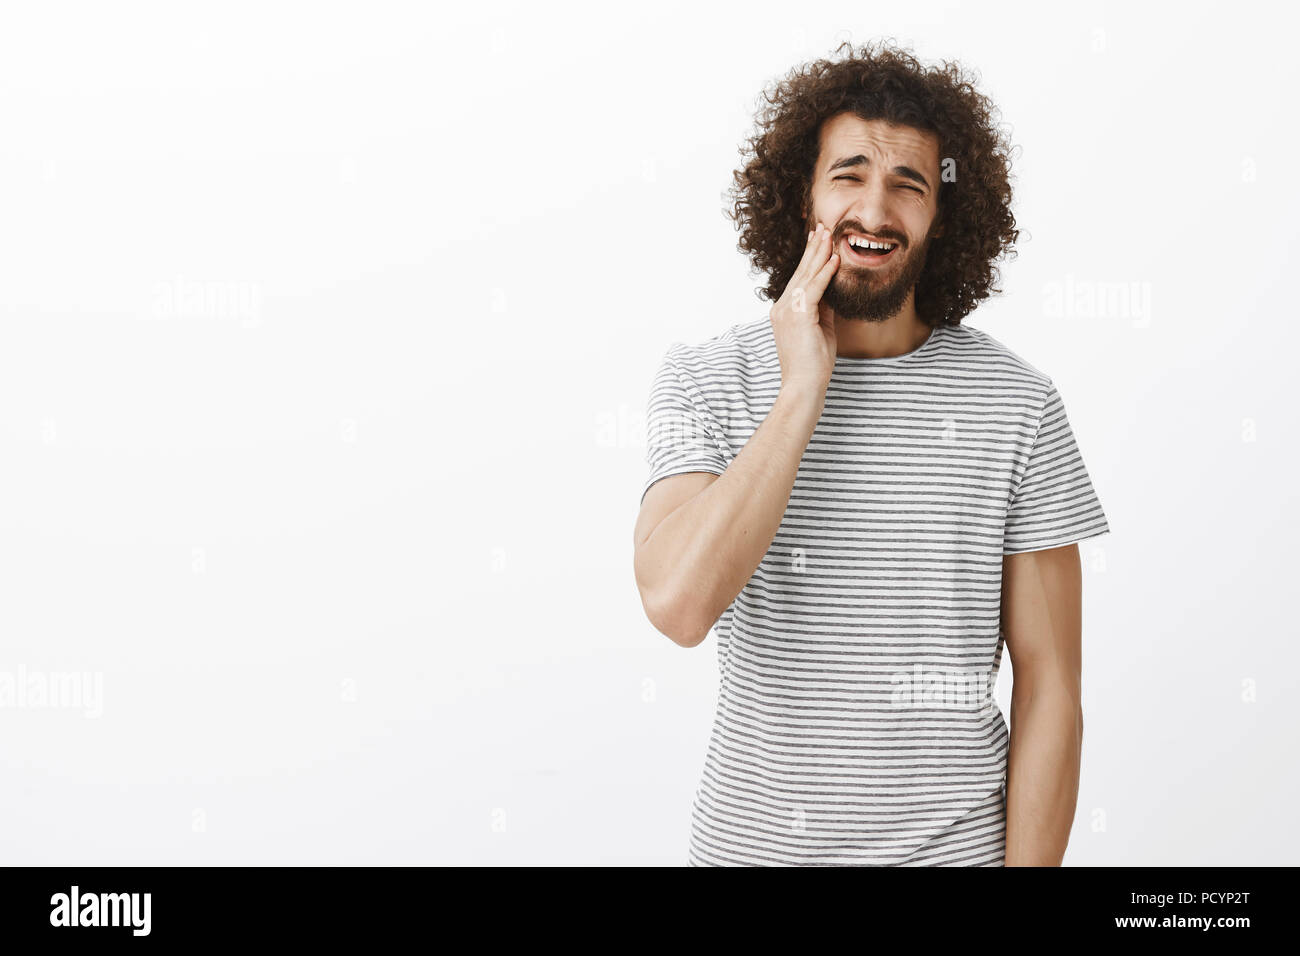 Portrait of displeased bothered handsome Eastern male student with afro hairstyle in striped t-shirt, touching beard and grimacing from dislike, feeli - Stock Image